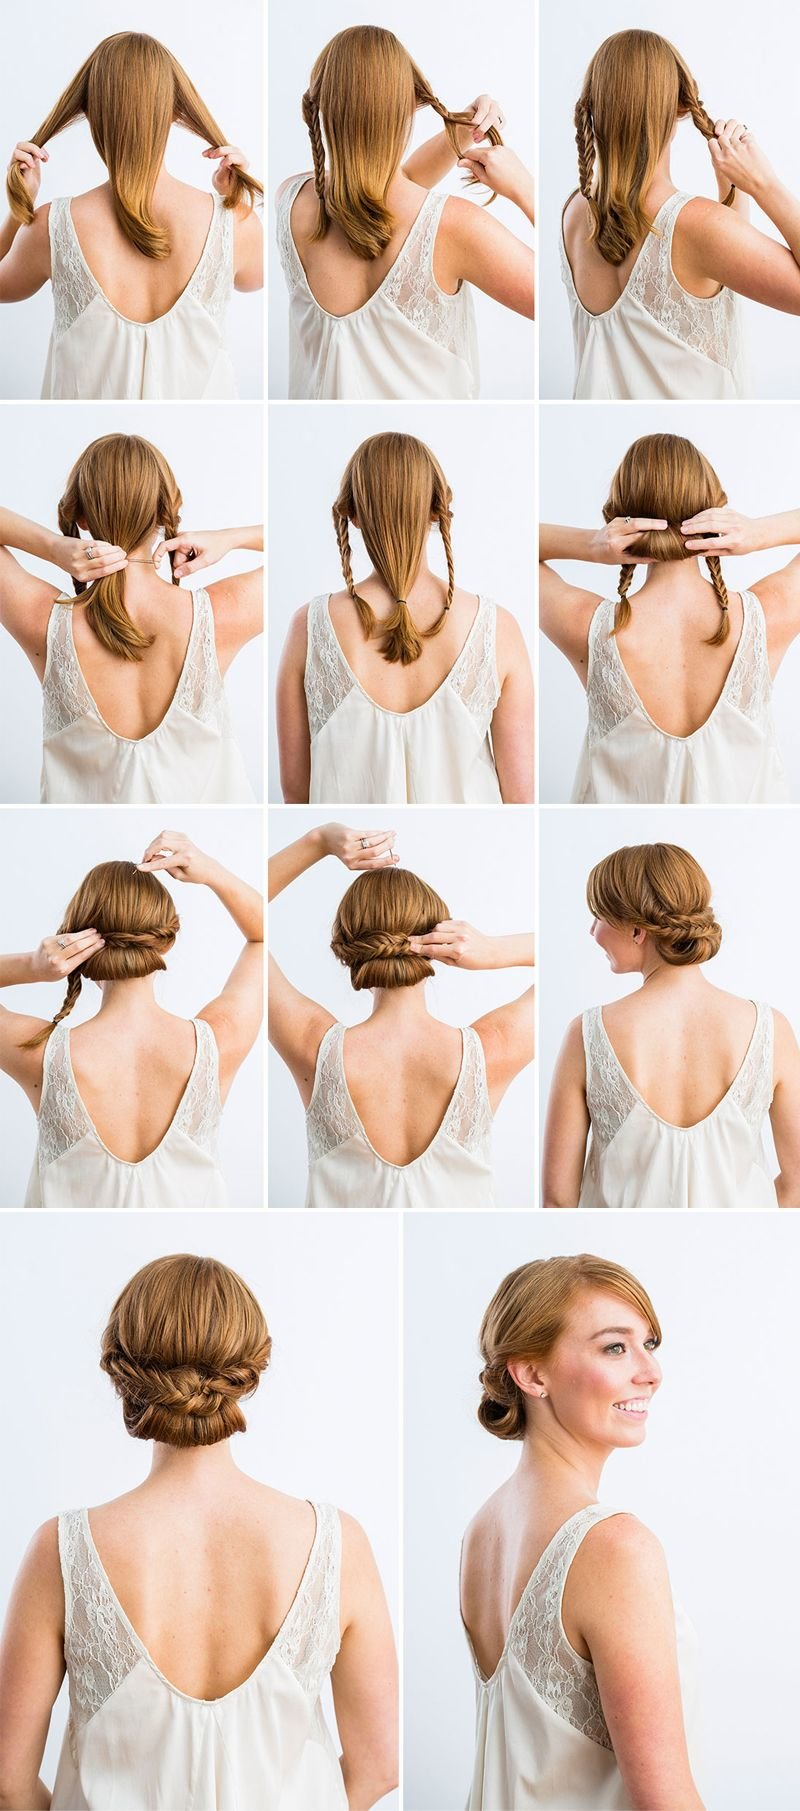 Free 10 Best Diy Wedding Hairstyles With Tutorials Diy Wallpaper